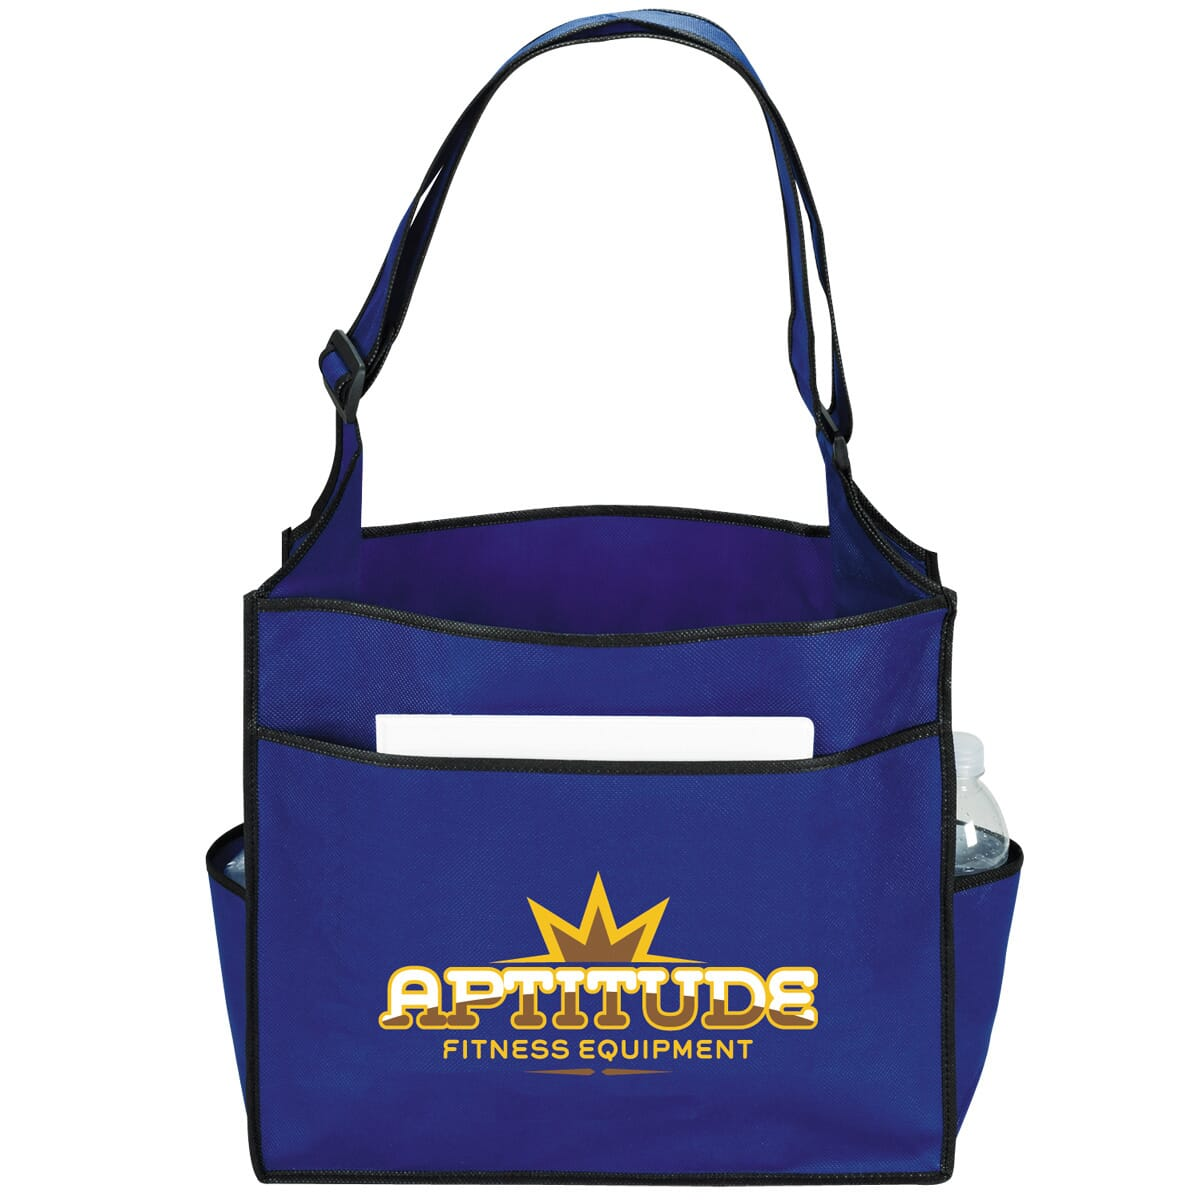 Event tote with full color imprint on front pocket